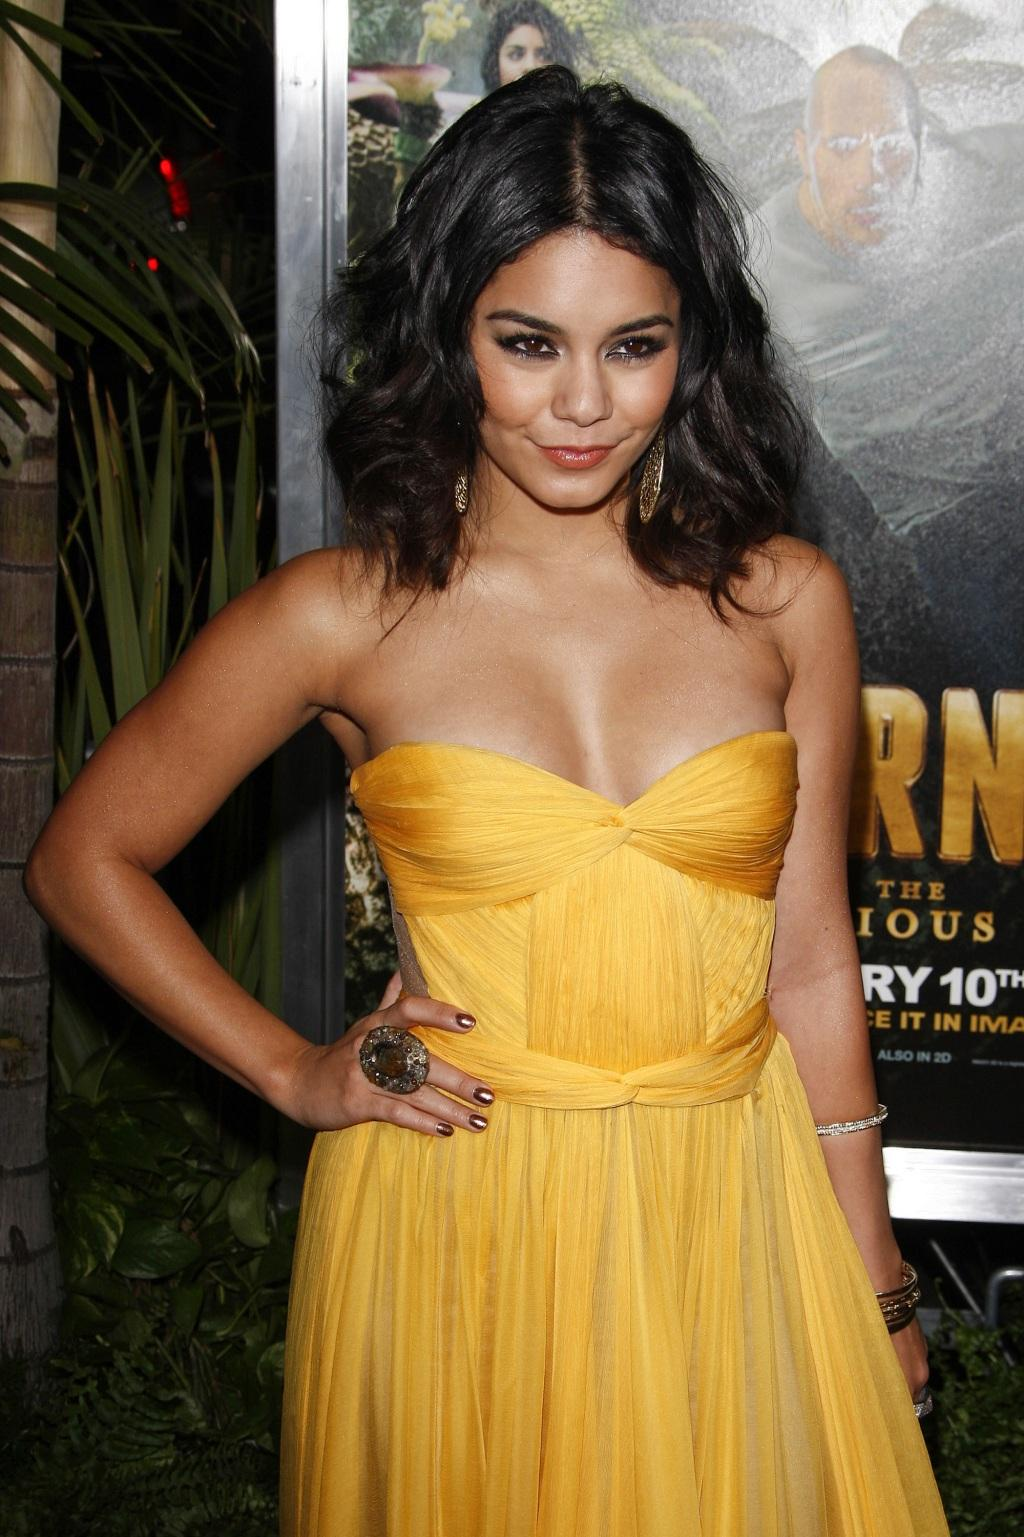 Cleavage Vanessa Hudgens nude photos 2019